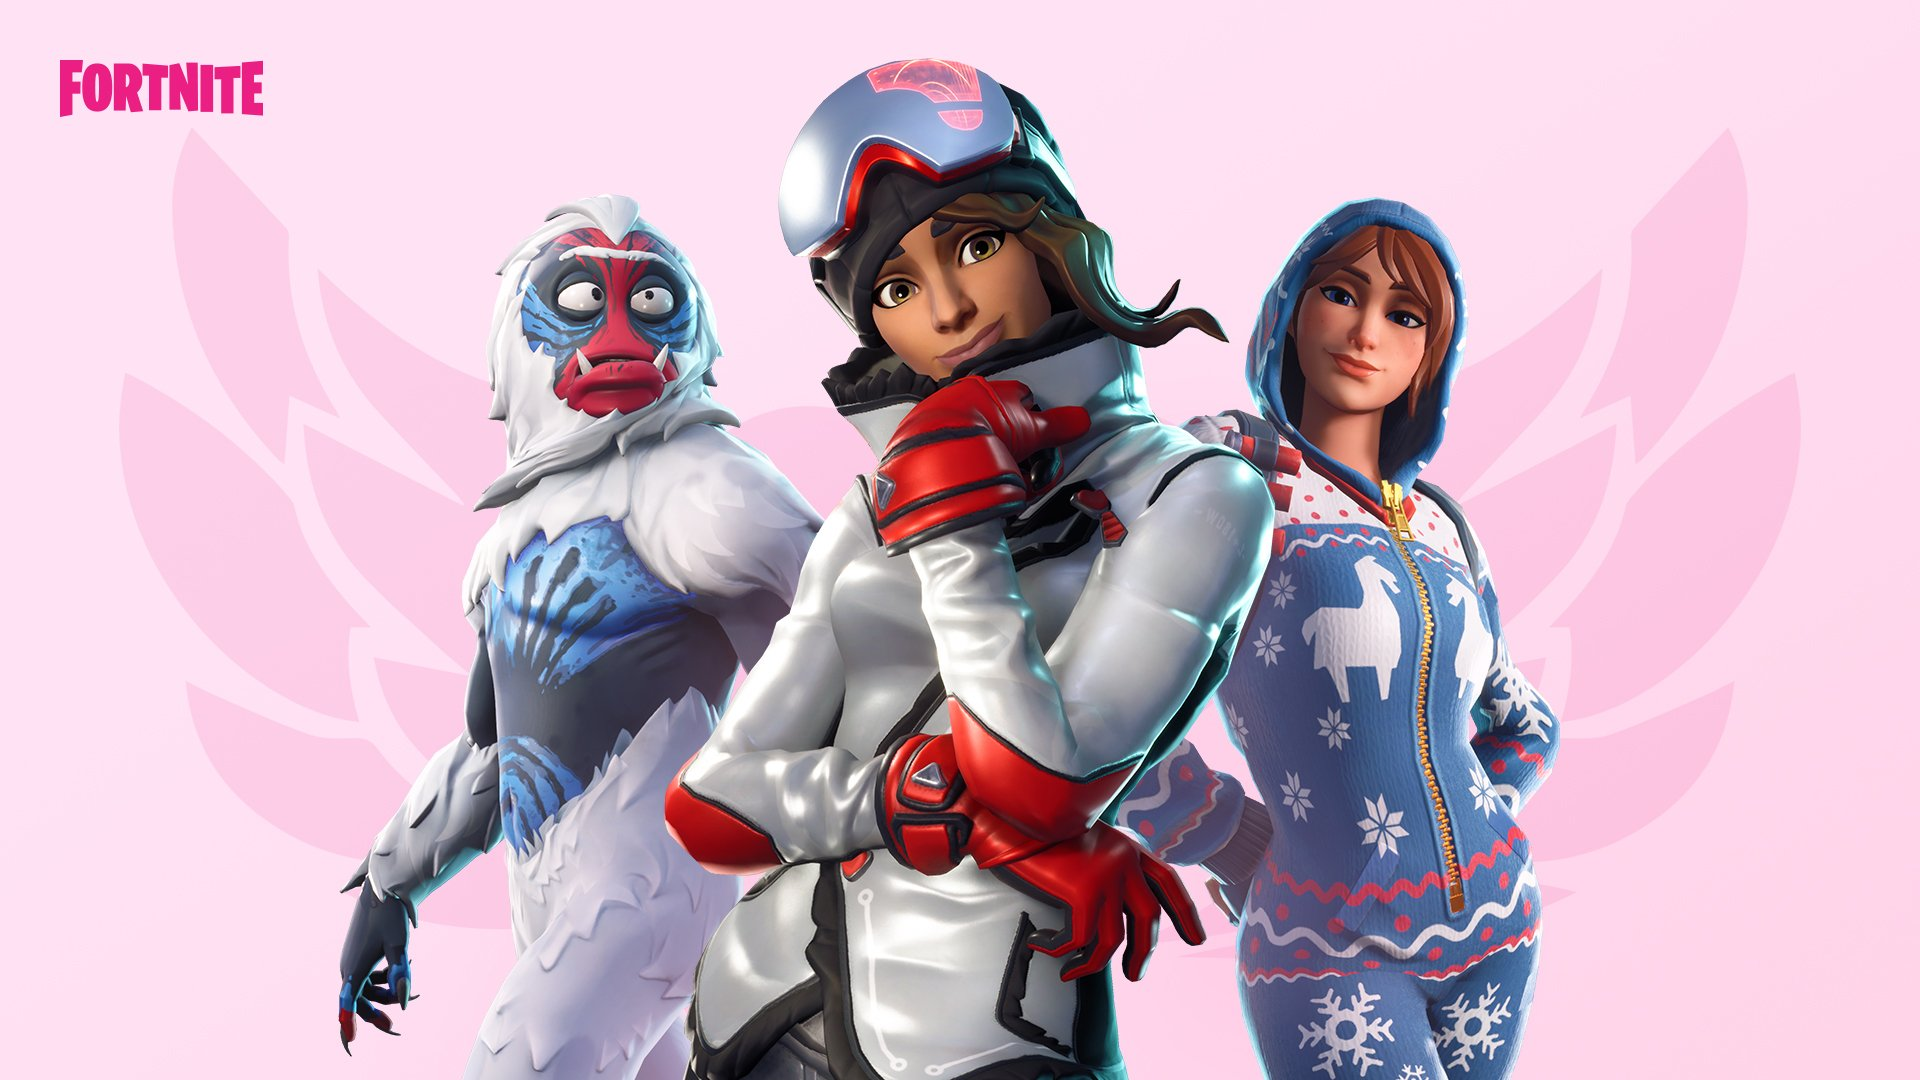 PS4 et Xbox One matchmaking crossplay maintenant par défaut pour Fortnite